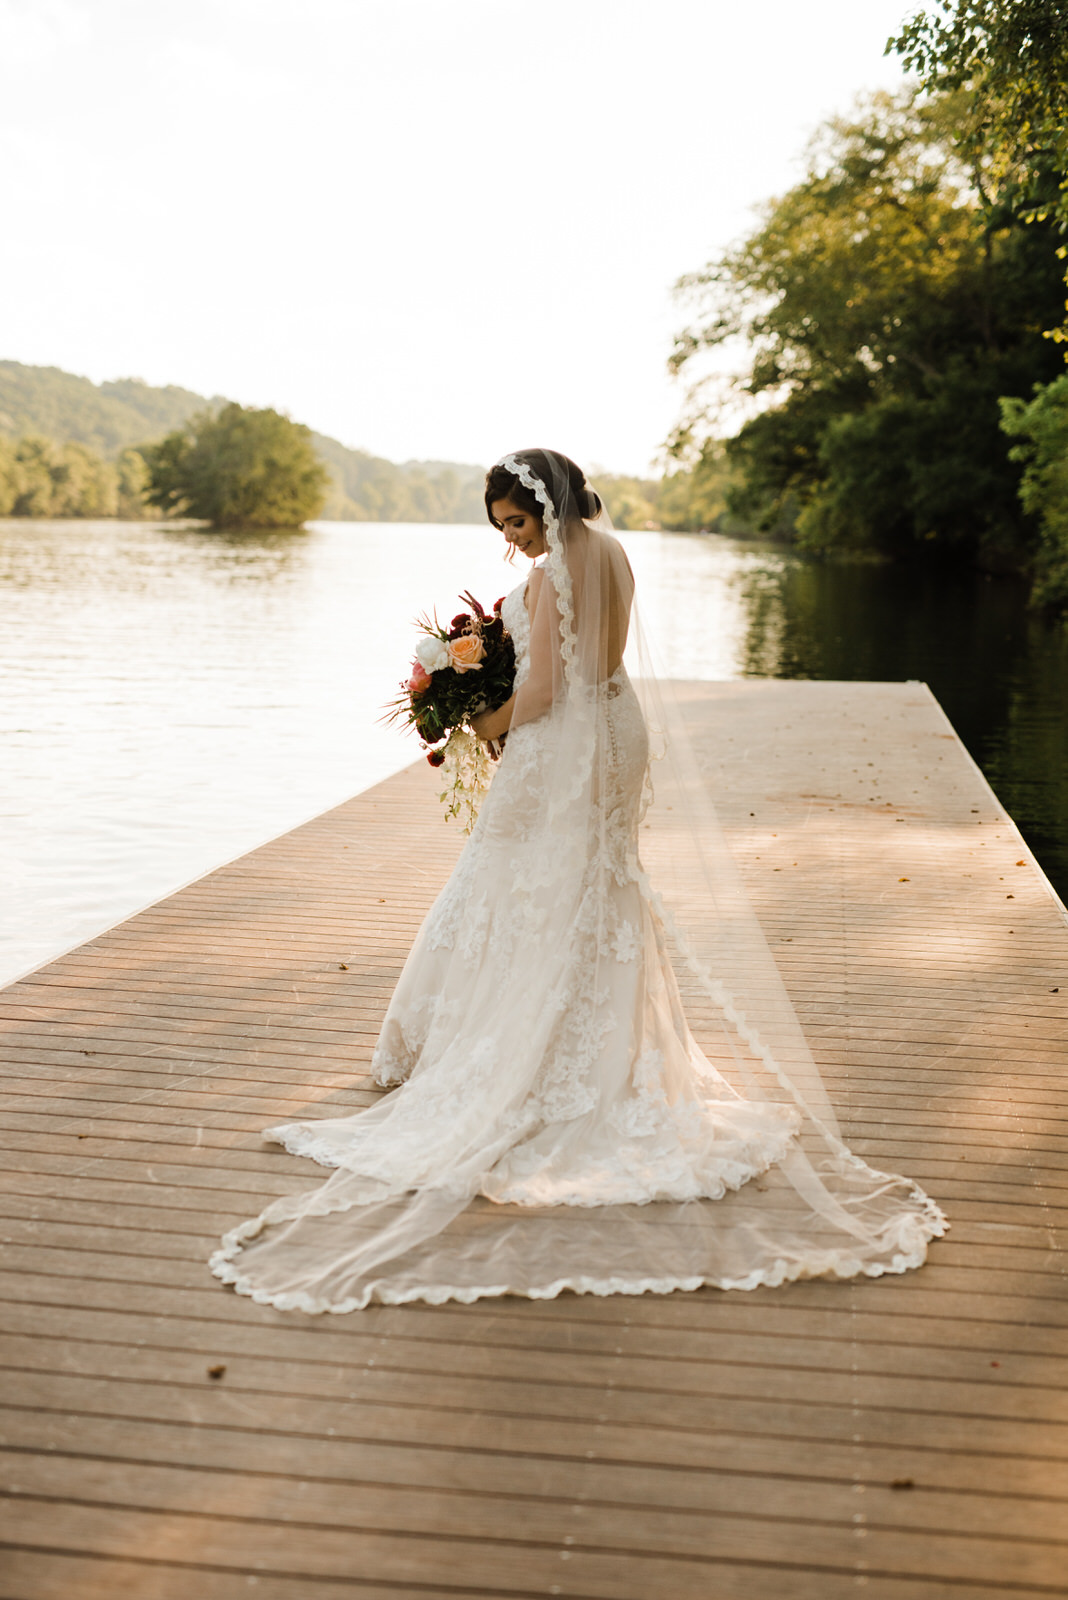 Bride with flowers wearing cathedral veil